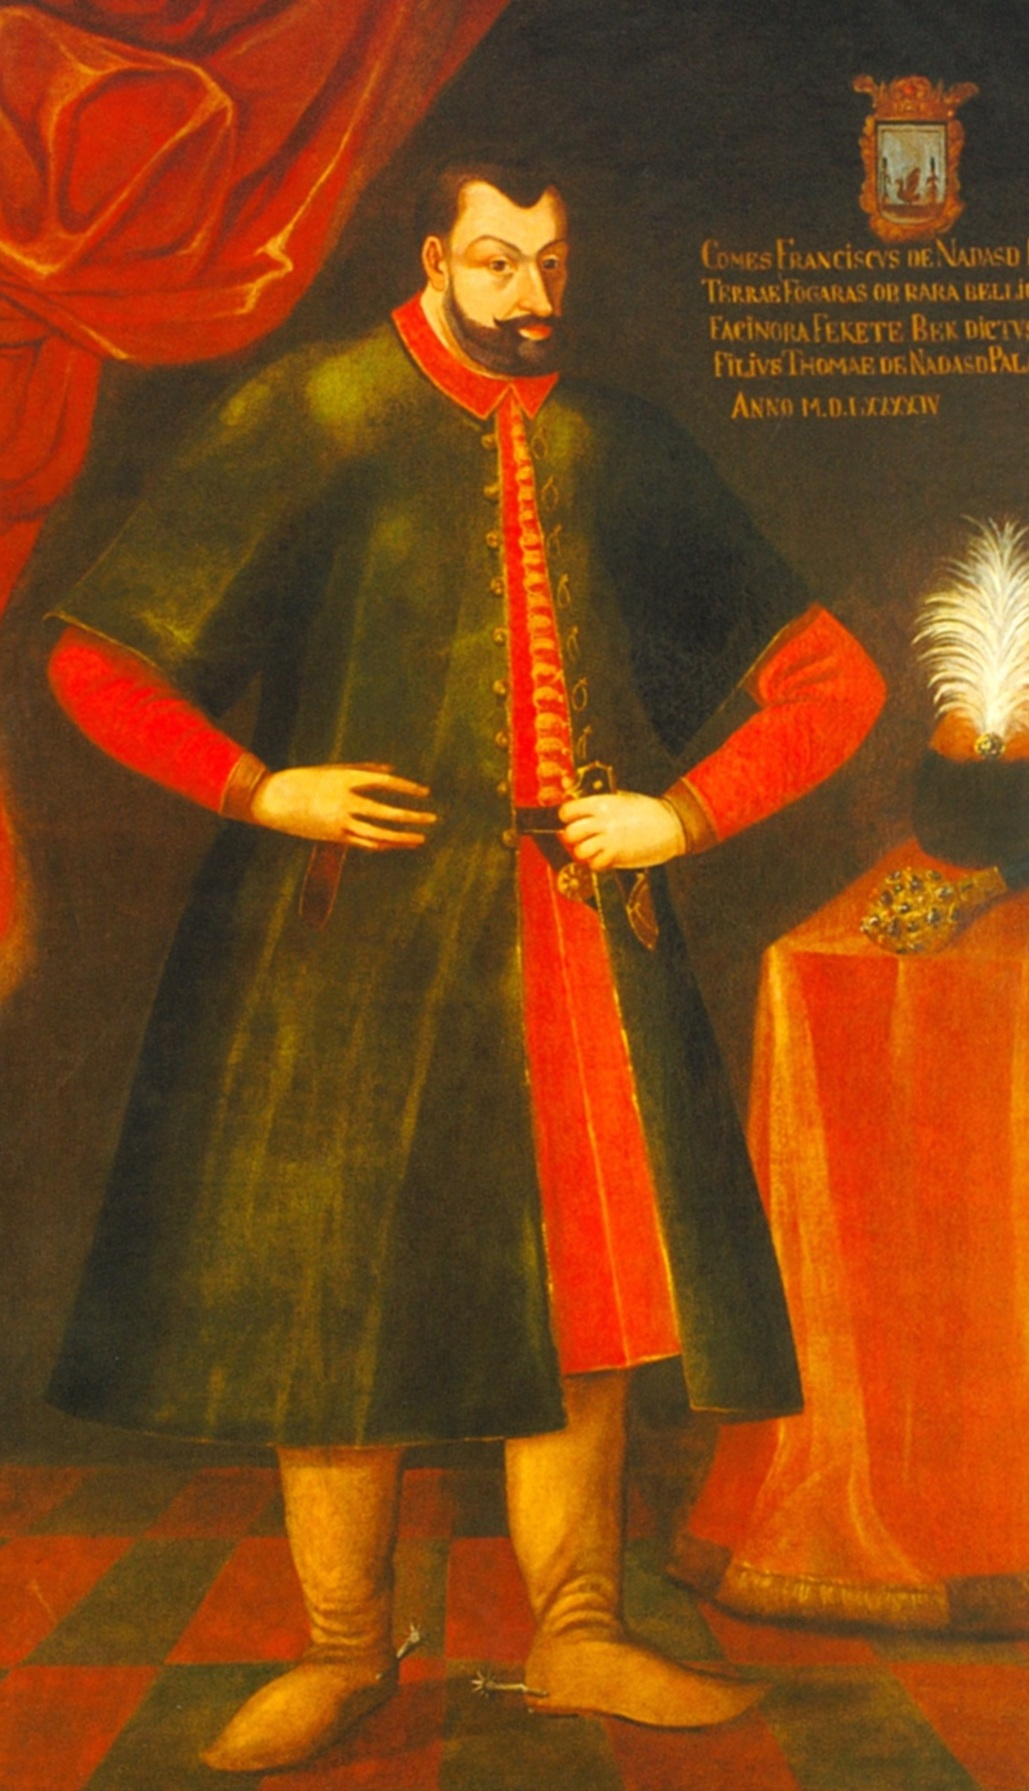 Count   Ferenc Nádasdy  (6 Oct 1555 – 4 Jan 1604) was a Hungarian nobleman, who would later be known as The Black Knight of Hungary for his leadership in the Ottoman Wars.  In 1571, at 16 years old, Ferenc was engaged to 12-year-old  Elizabeth Báthory .  They first lived at the Nádasdy family Castle, Castle  Sárvár , then later at  Čachtice Castle .